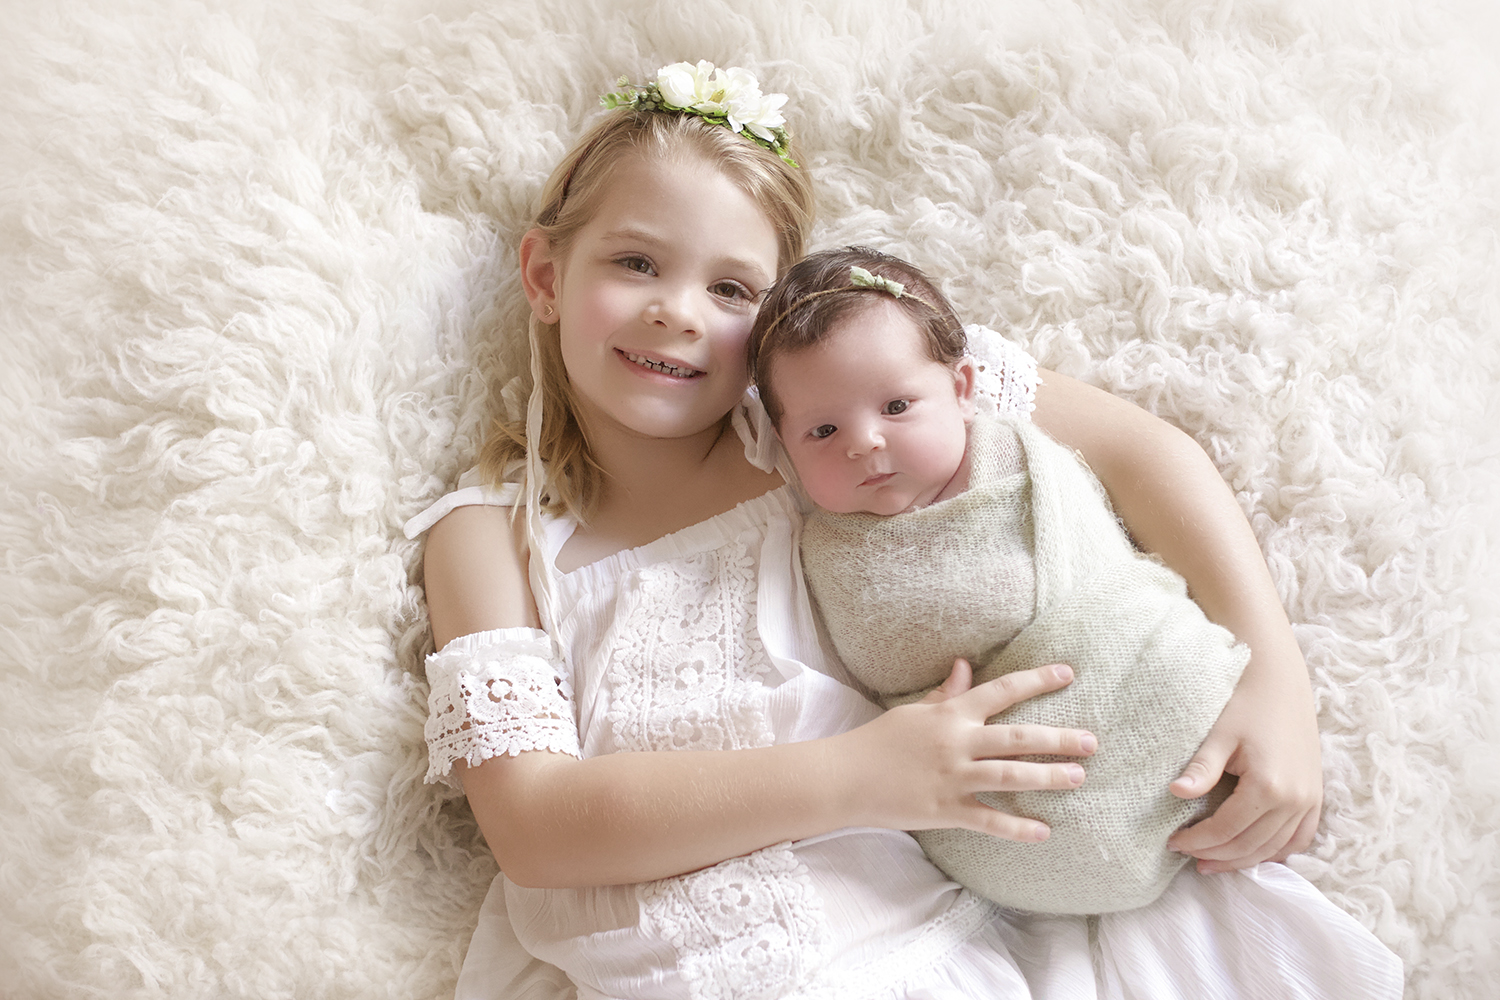 Newborn baby girl wrapped in green knit blanket with green bow tieback being held by sibling big sister wearing white lace dress and flower tieback laying on cream fur